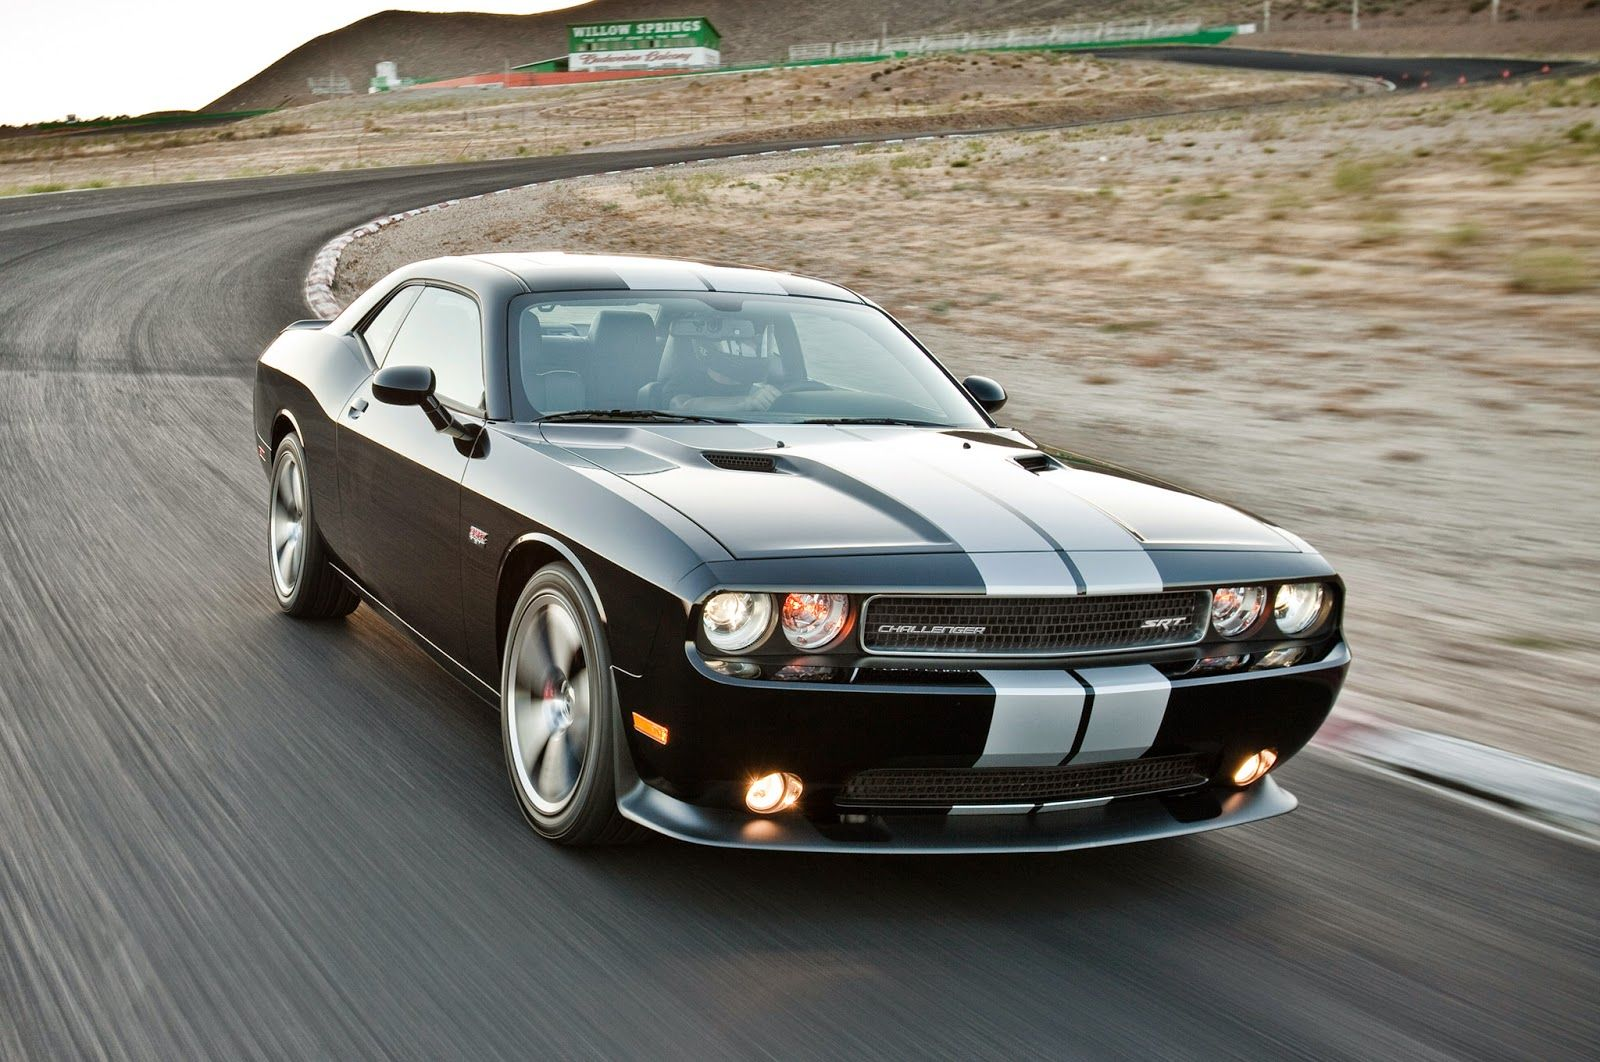 dodge challenger srt8 black stripes 7637 best wallpapers. Black Bedroom Furniture Sets. Home Design Ideas